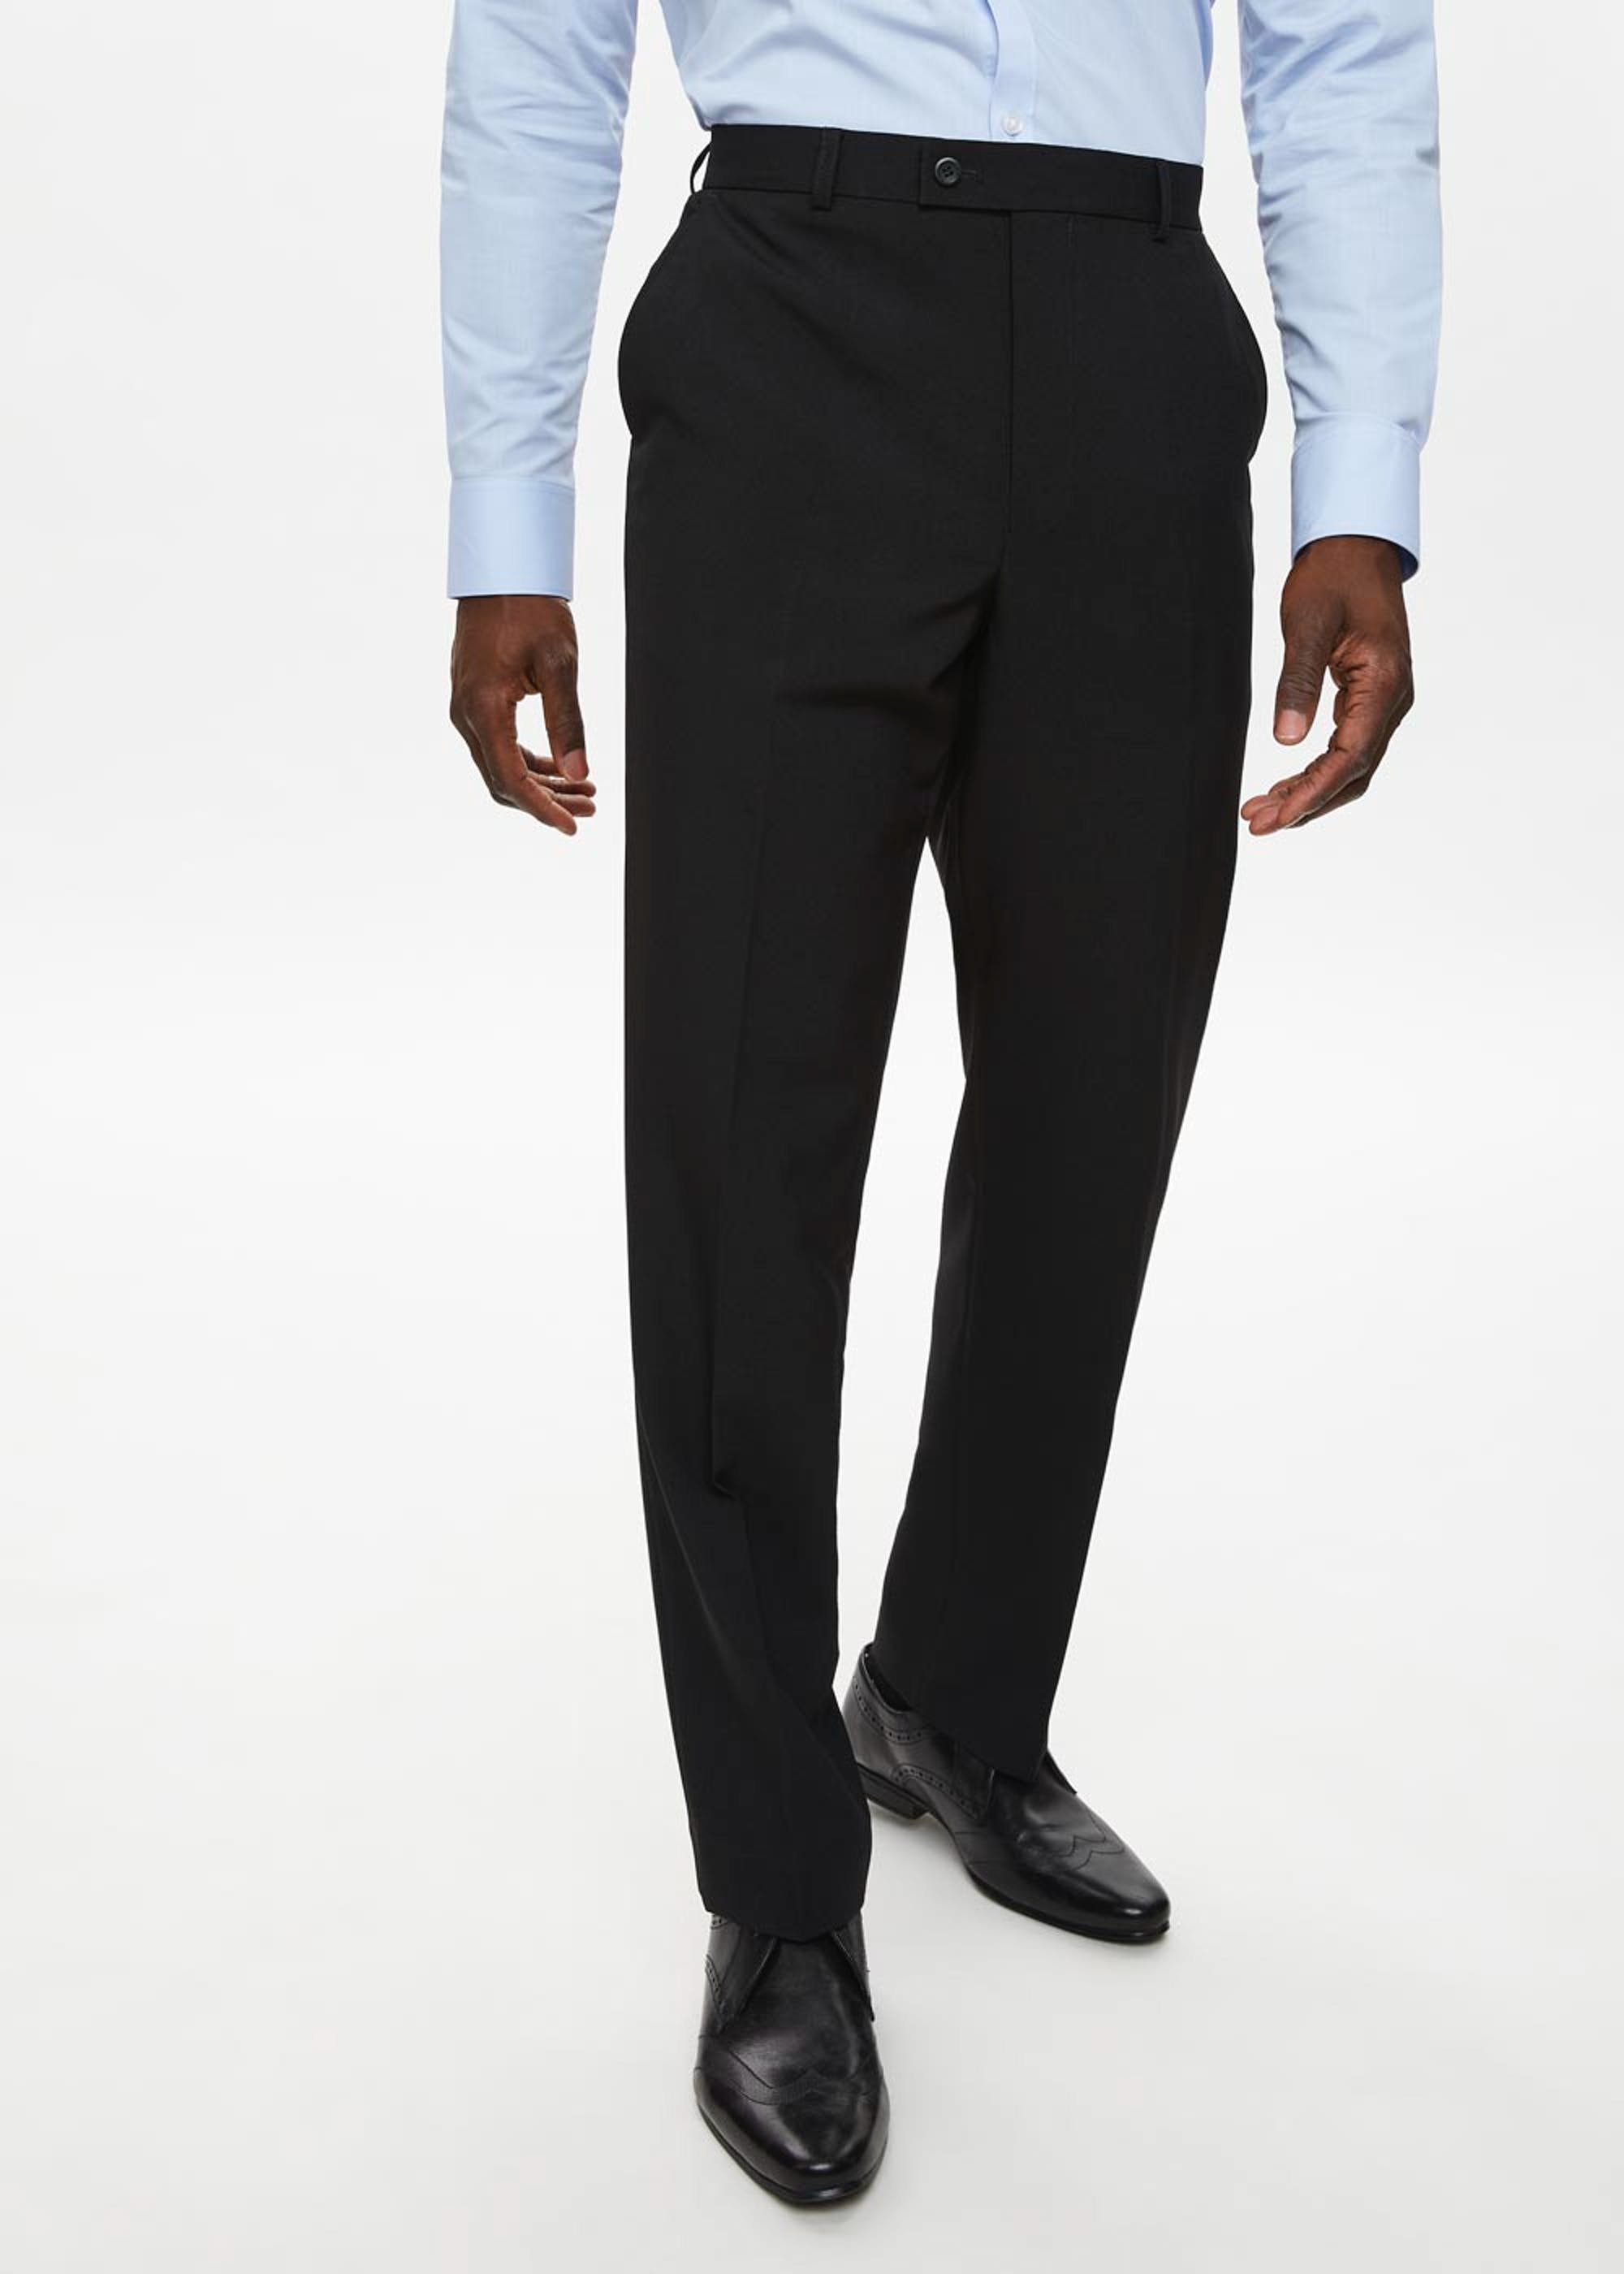 Taylor & Wright Regular Fit Formal Trousers Black sagPhL